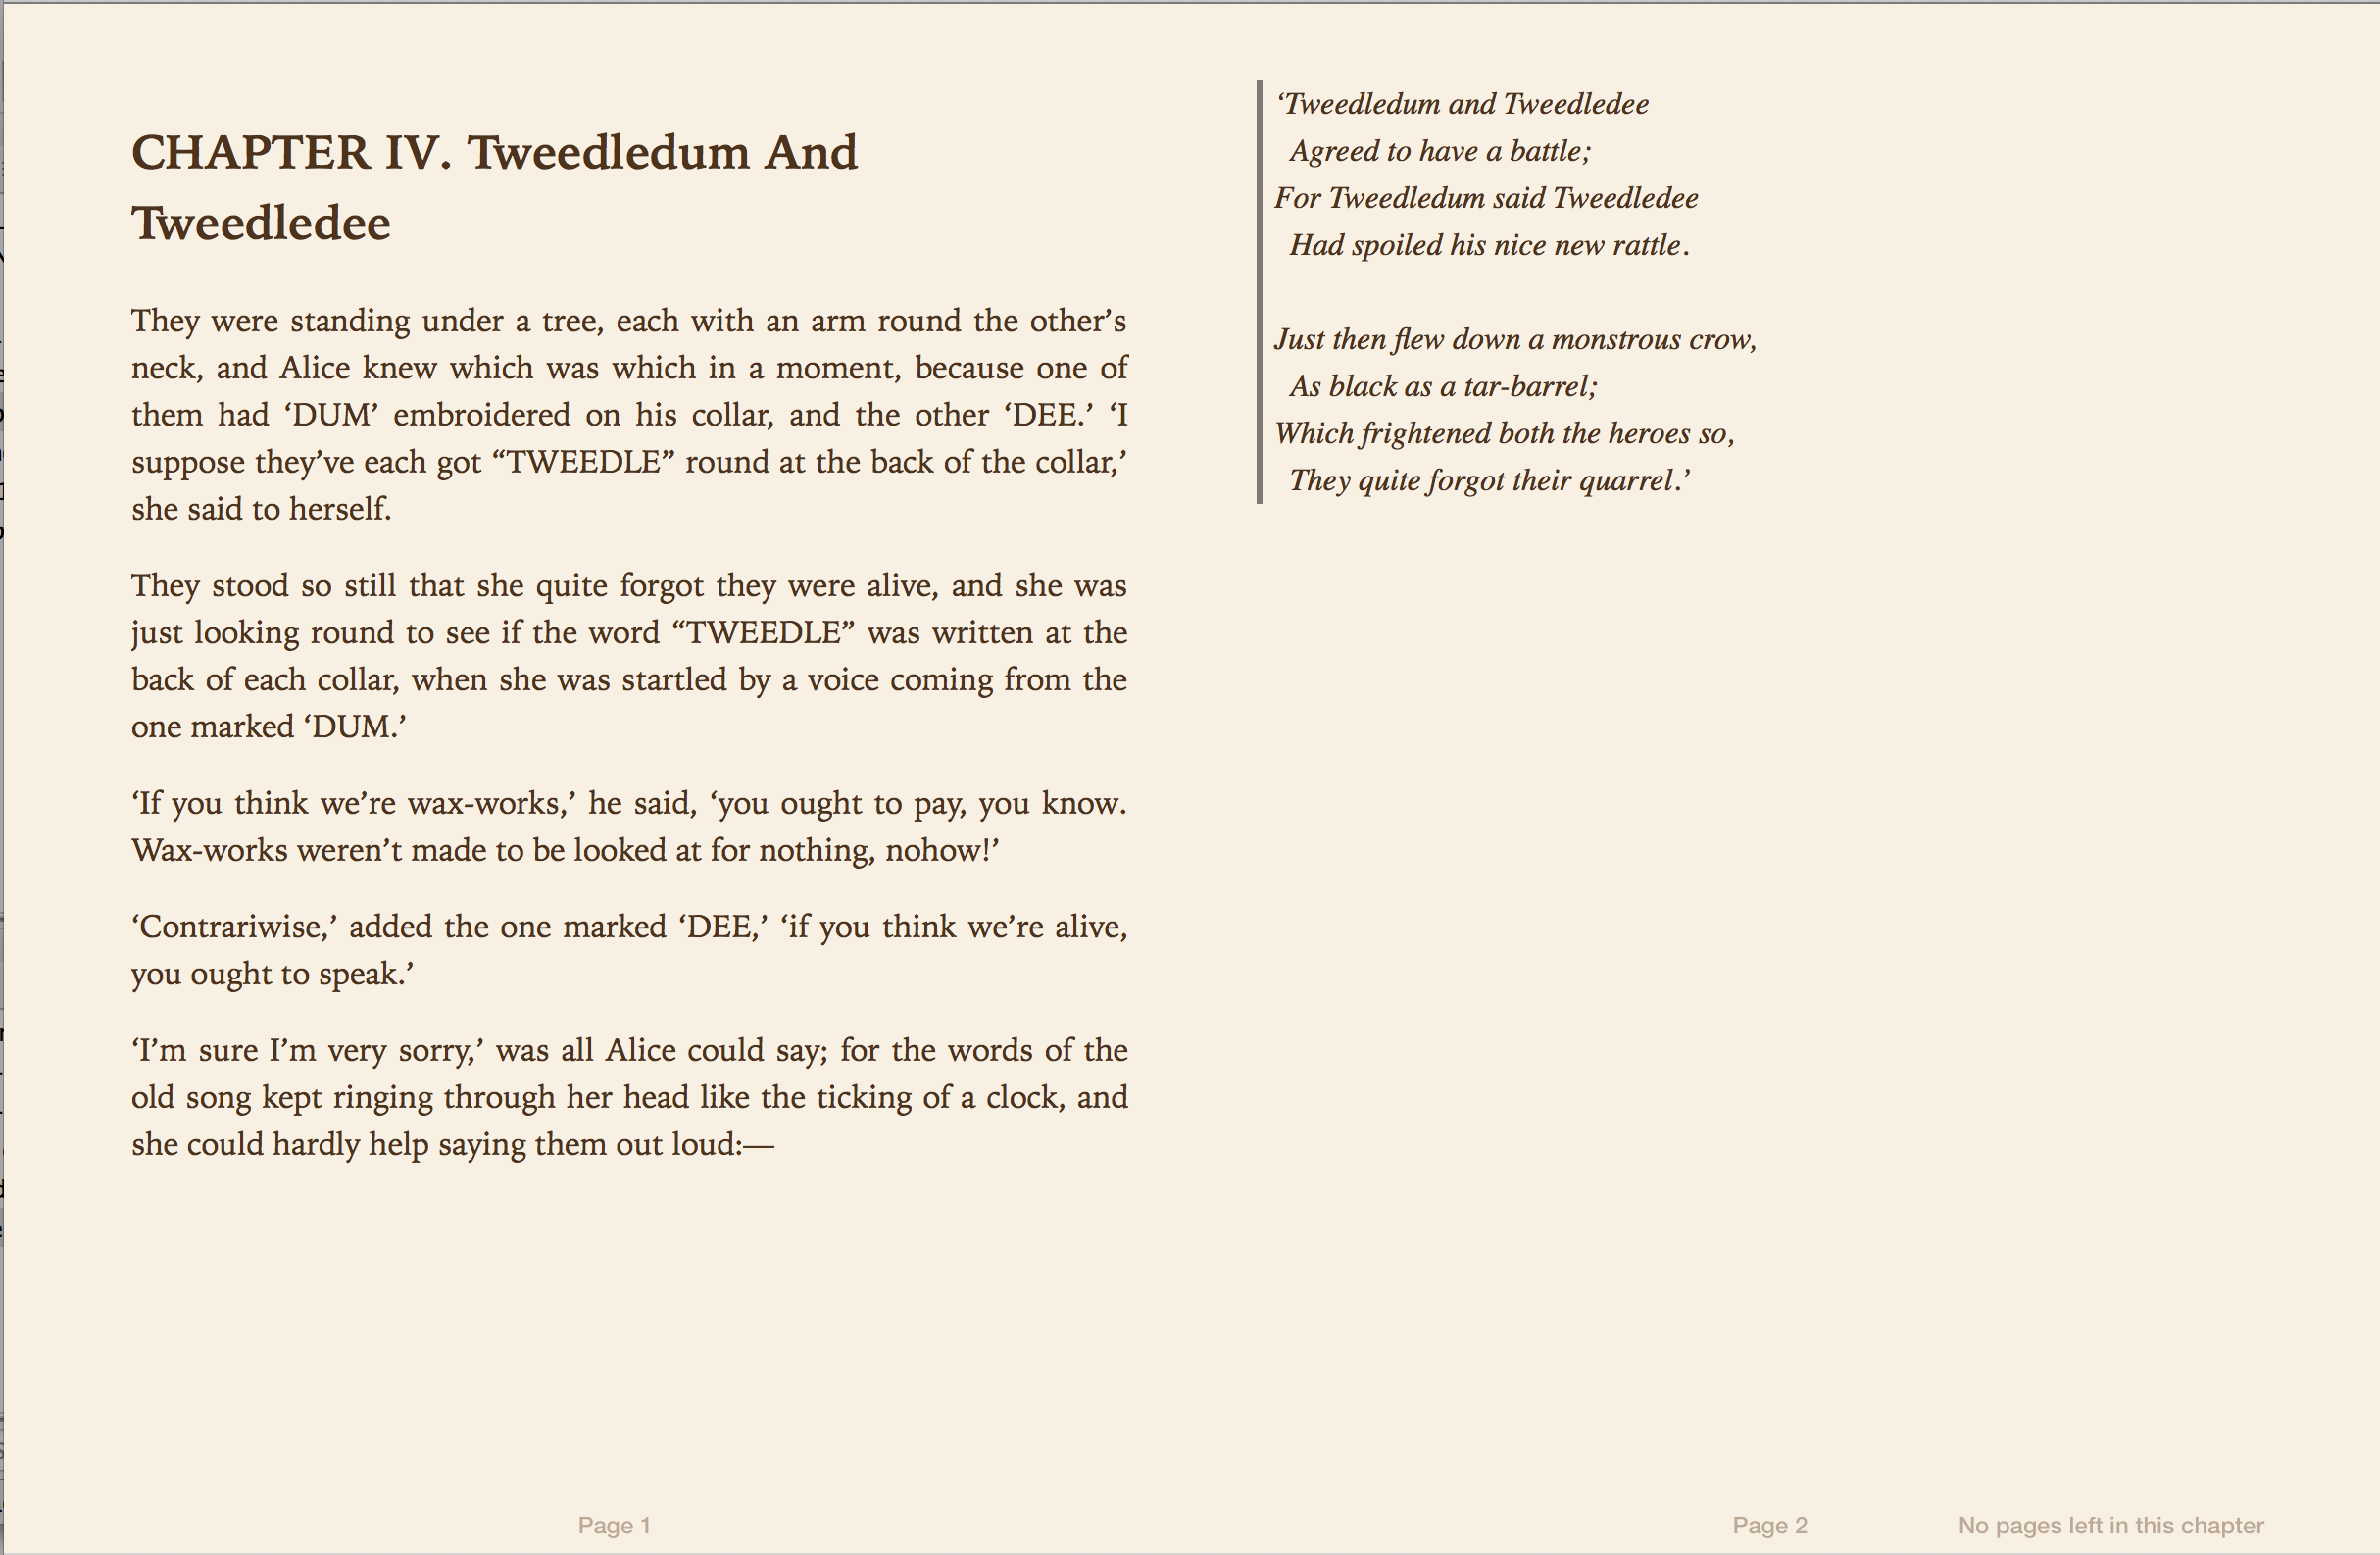 Responsive Ebook Design: A Primer - Sanders Kleinfeld - Medium